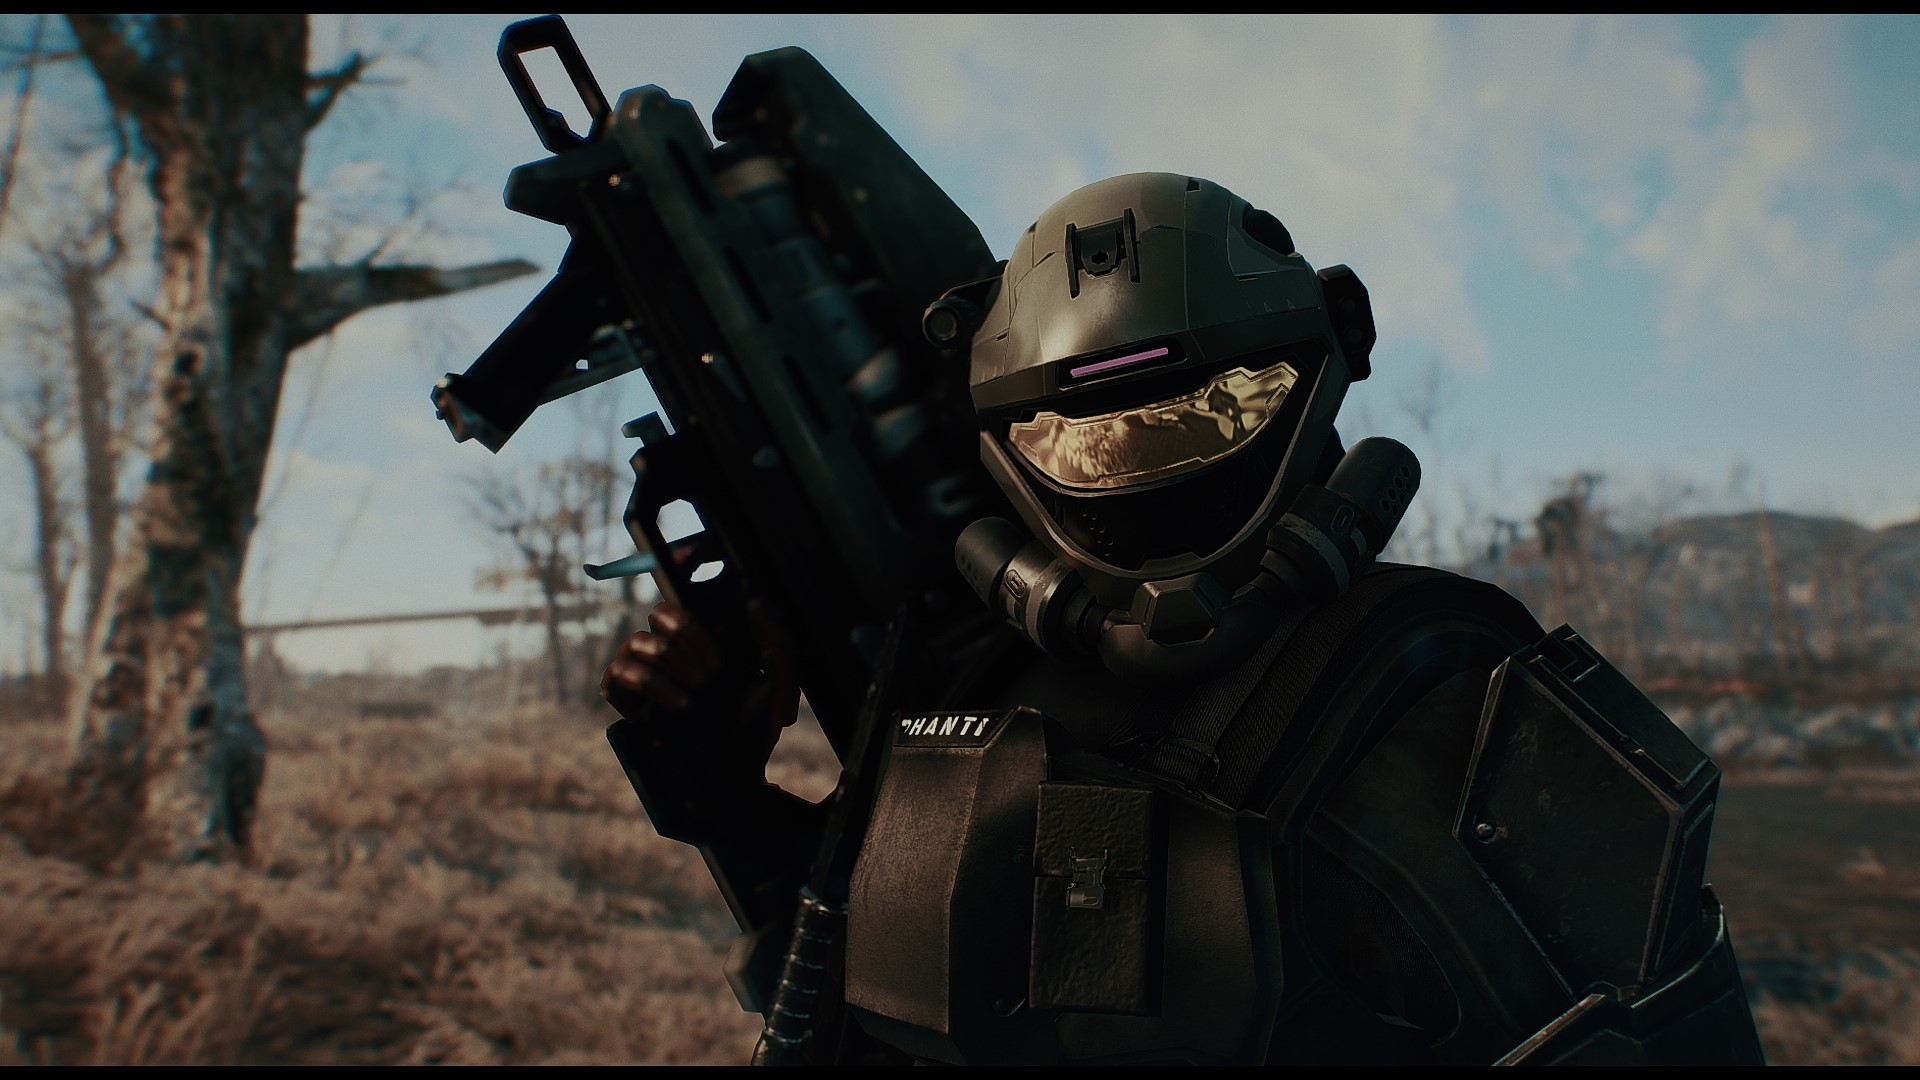 This mod lets you wear Halo armor in Fallout 4 | PCGamesN